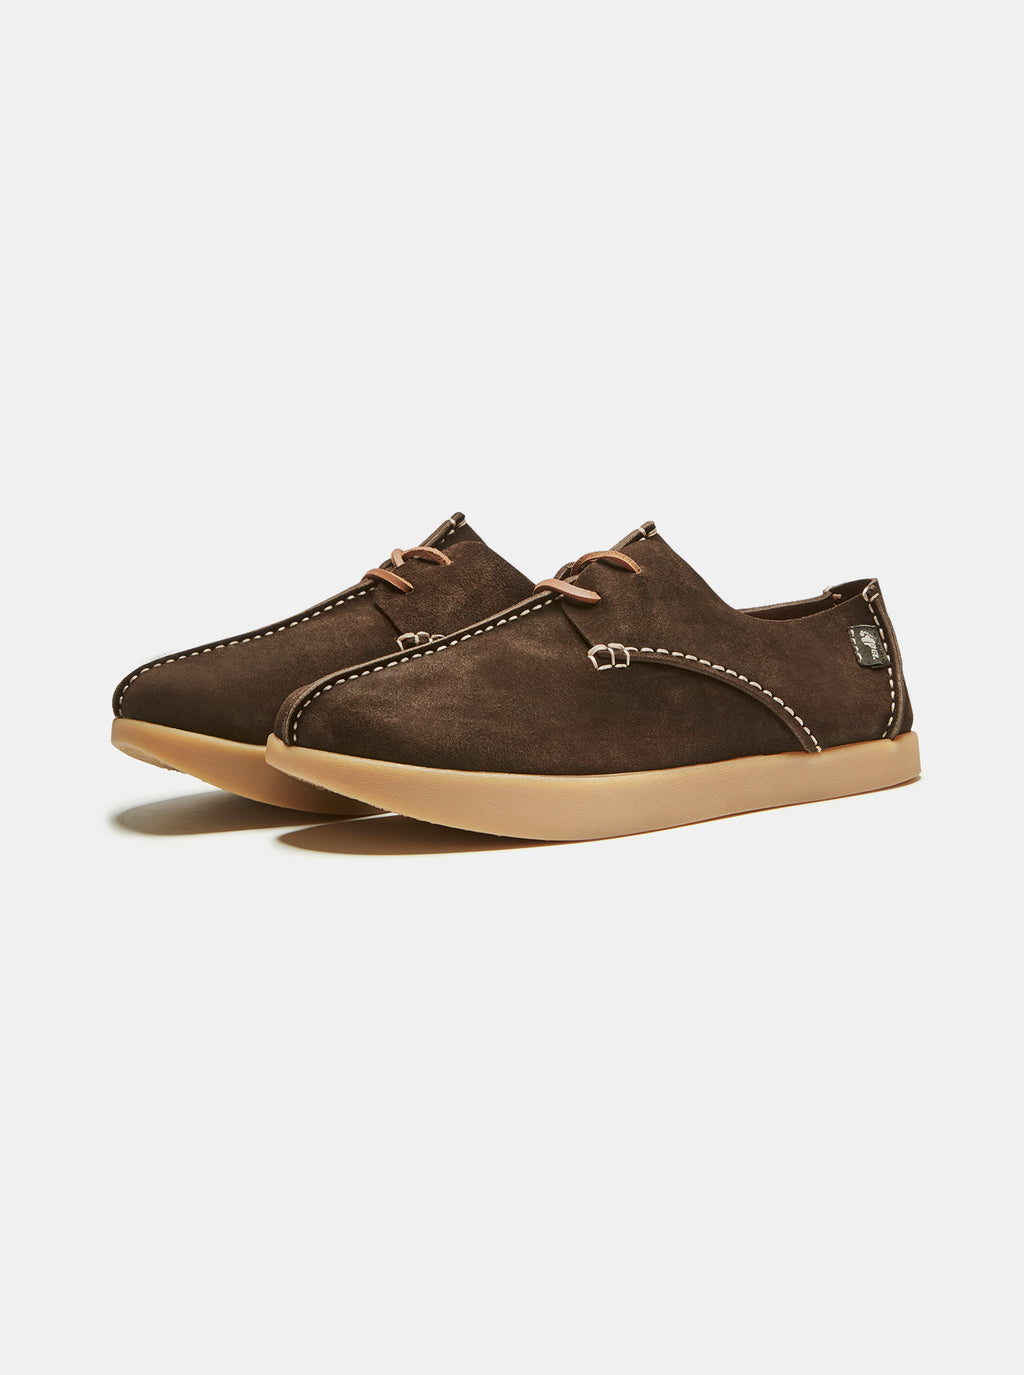 Lennon Suede Negative Heel Chocolate